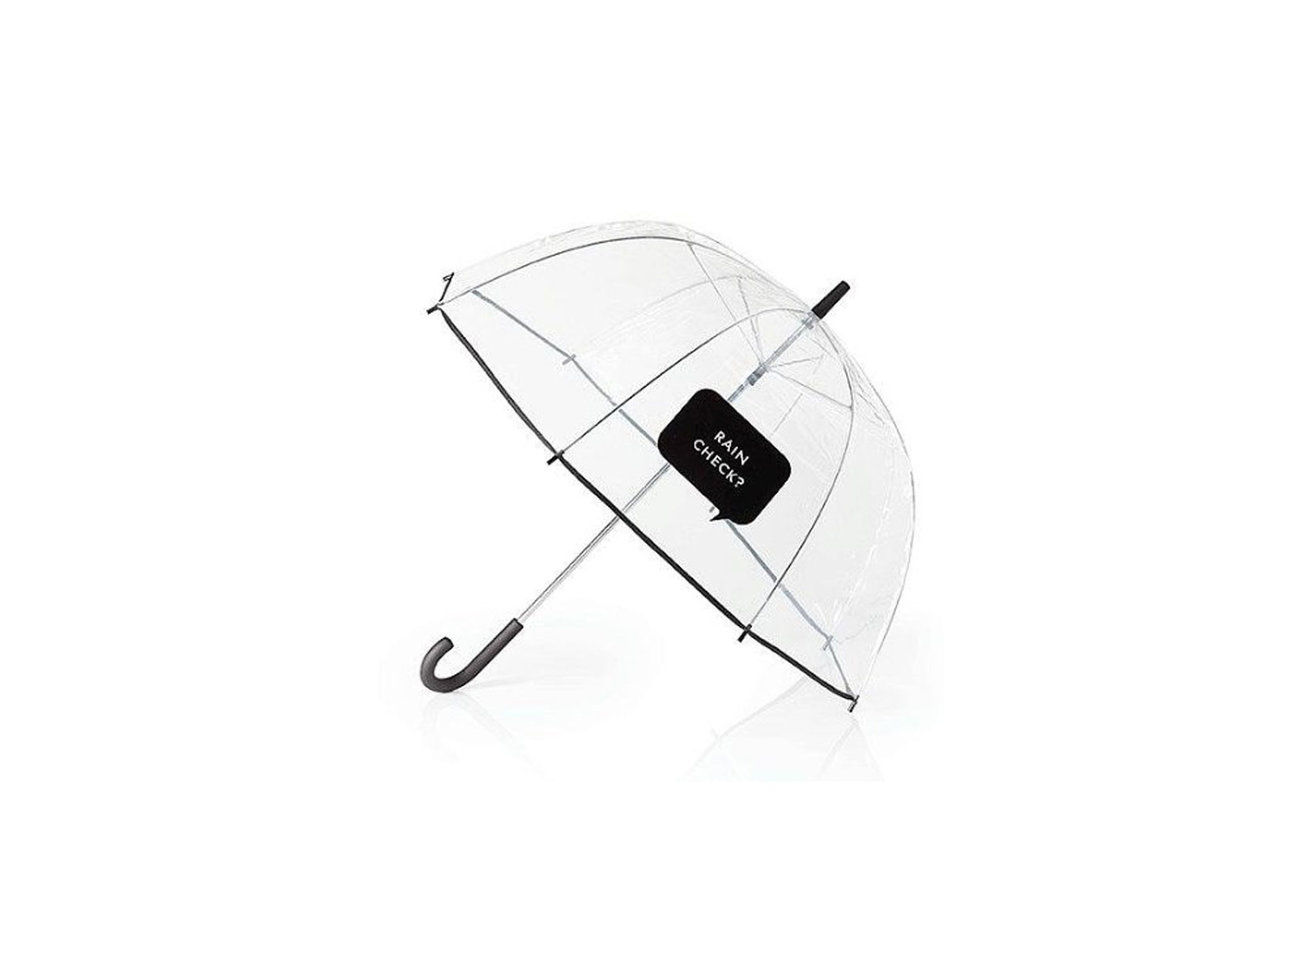 Kate-Spade-Umbrella-amazon-prime-BESTSHOP1215.jpg